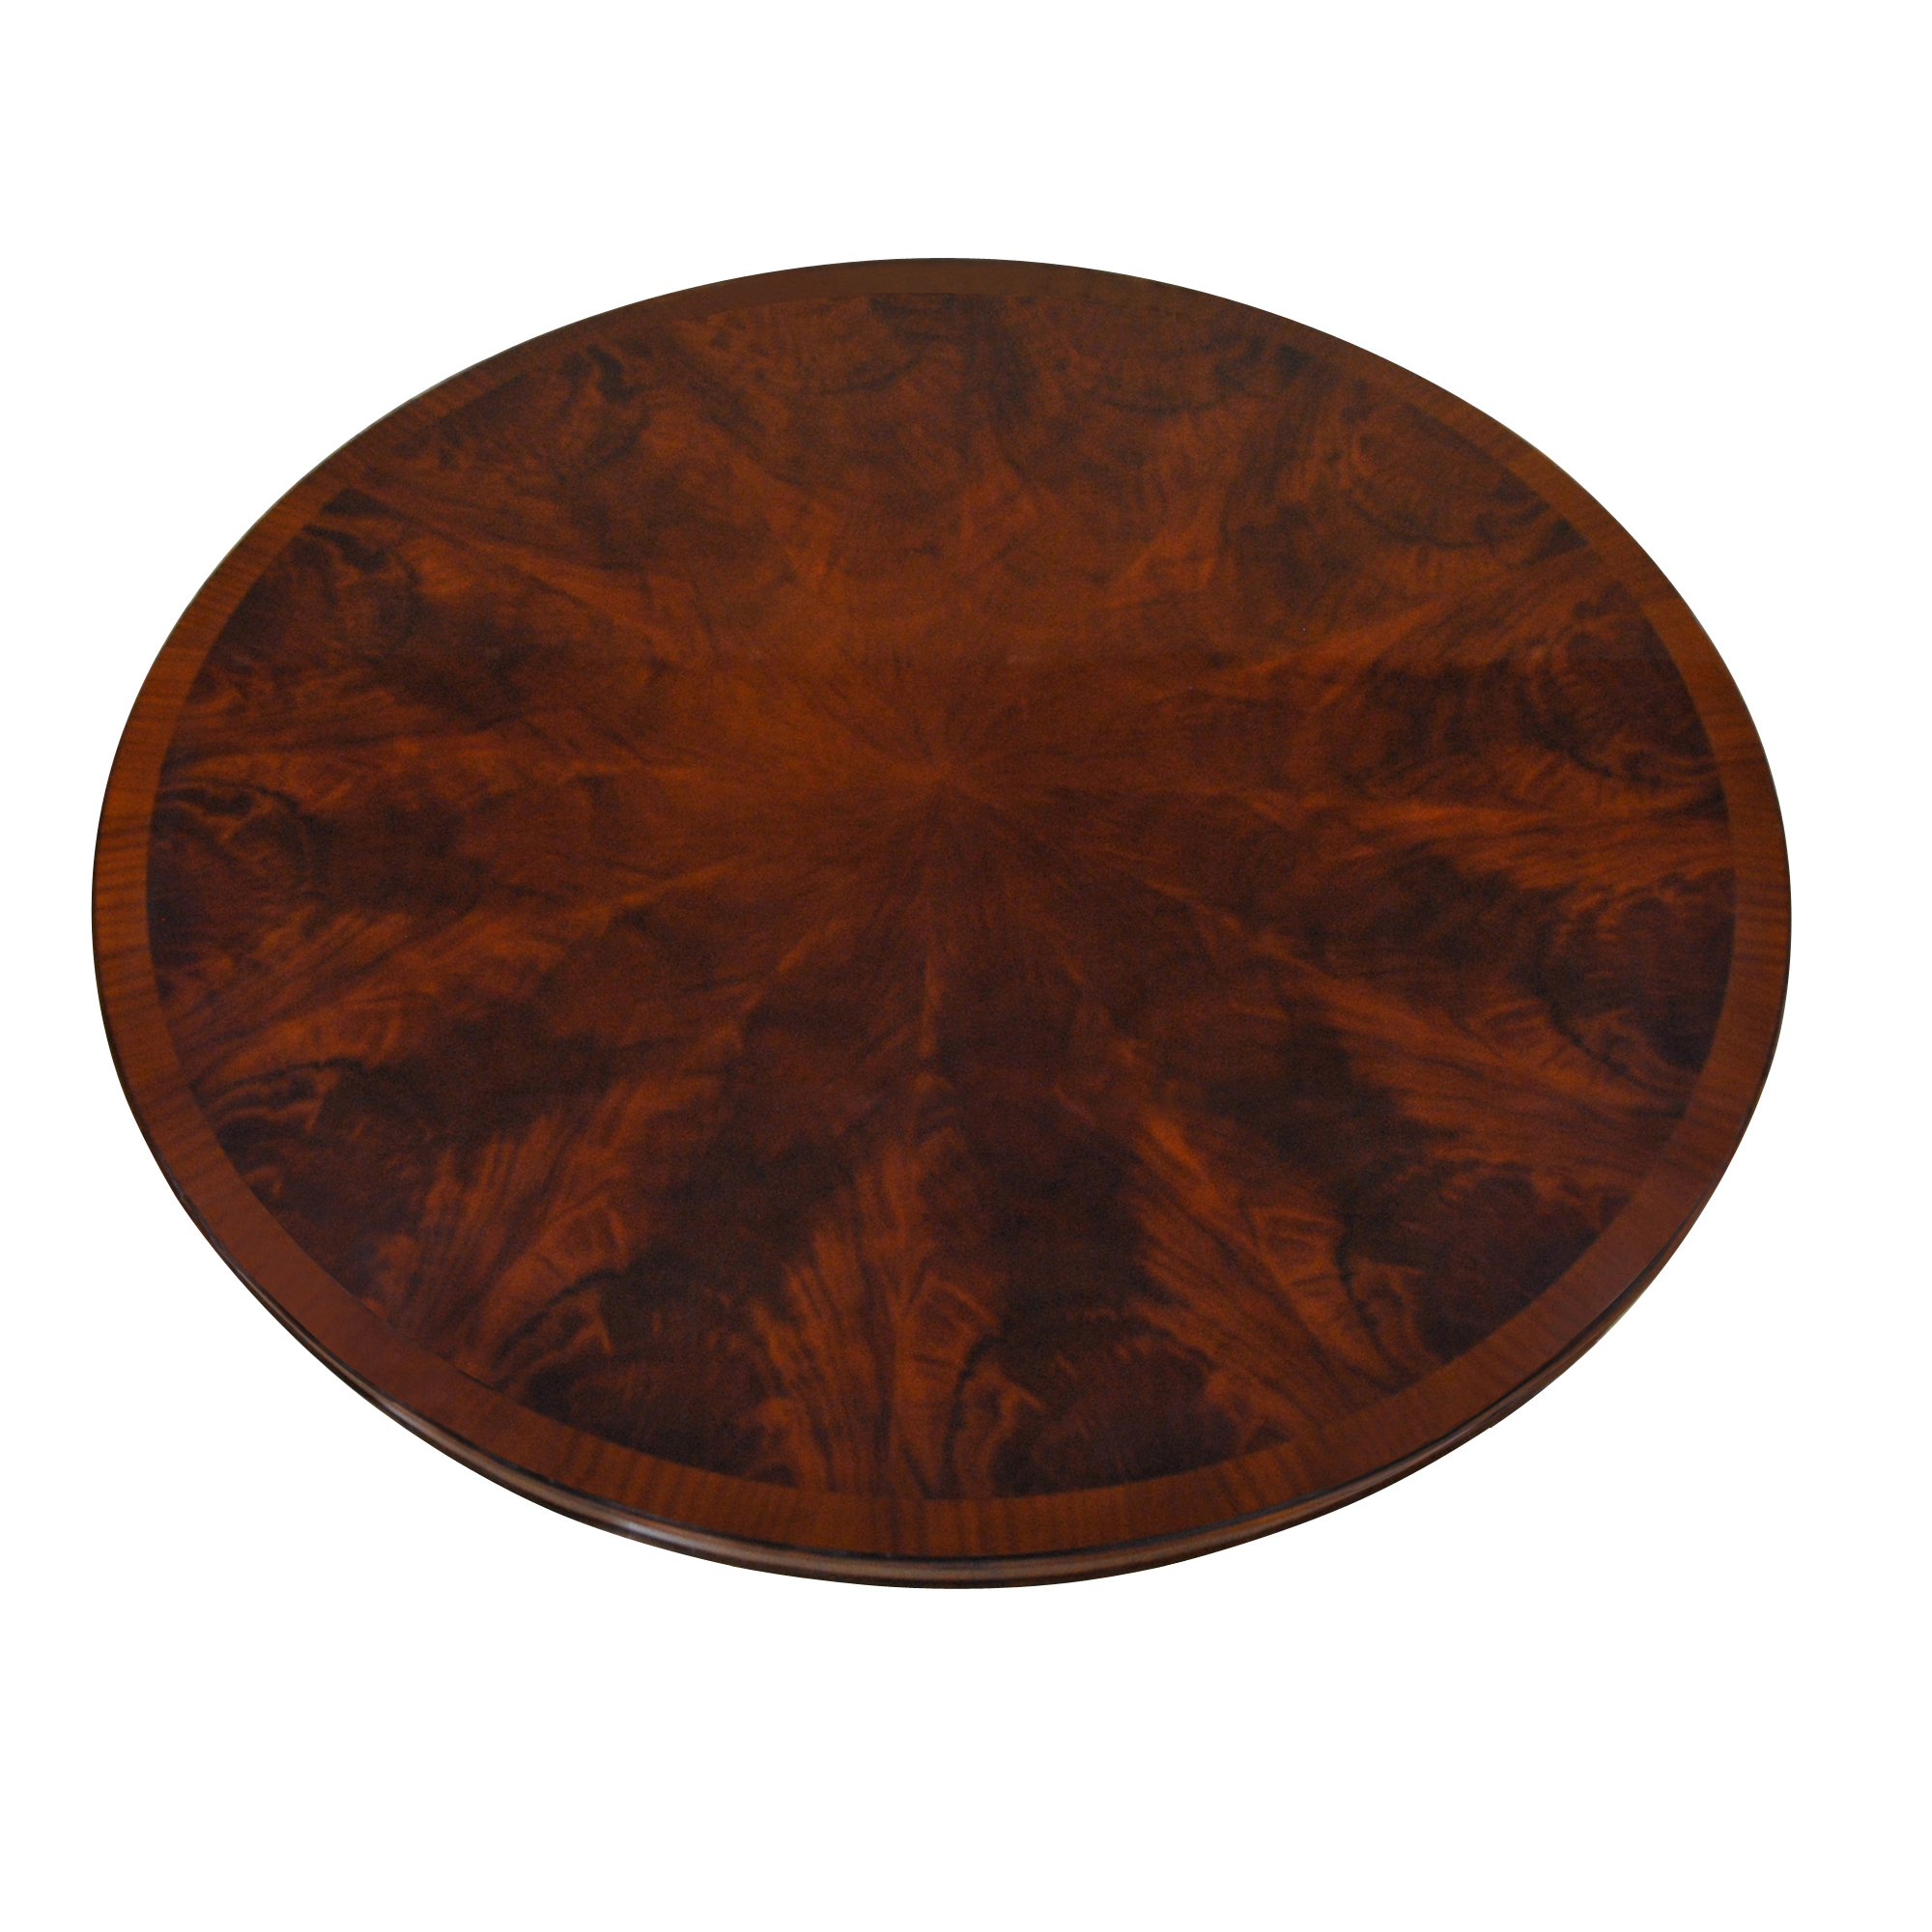 72 Inch Round Dining Table Ndrt061